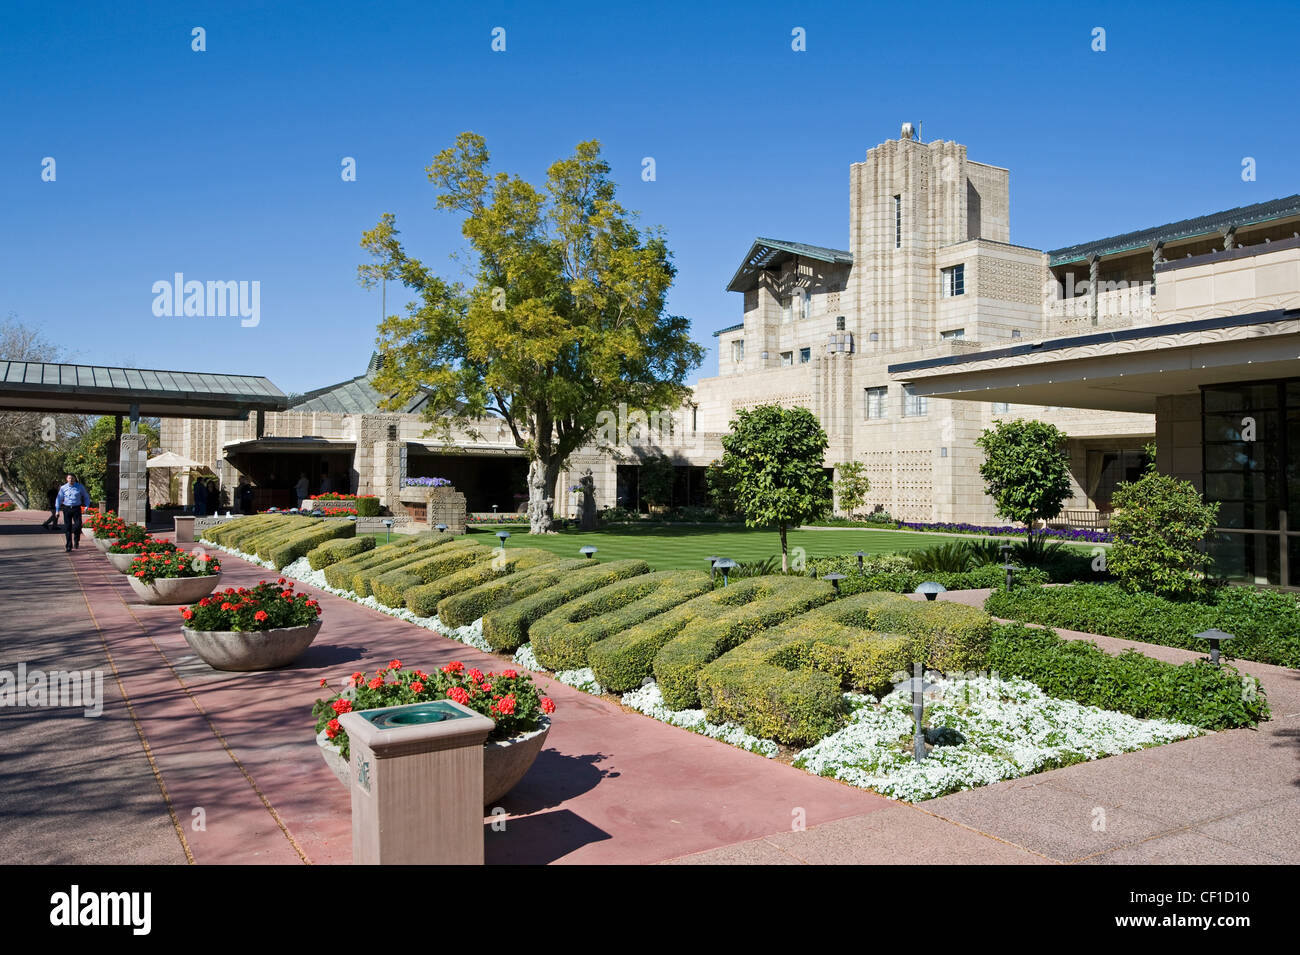 the biltmore resort & hotel, phoenix, arizona, usa stock photo